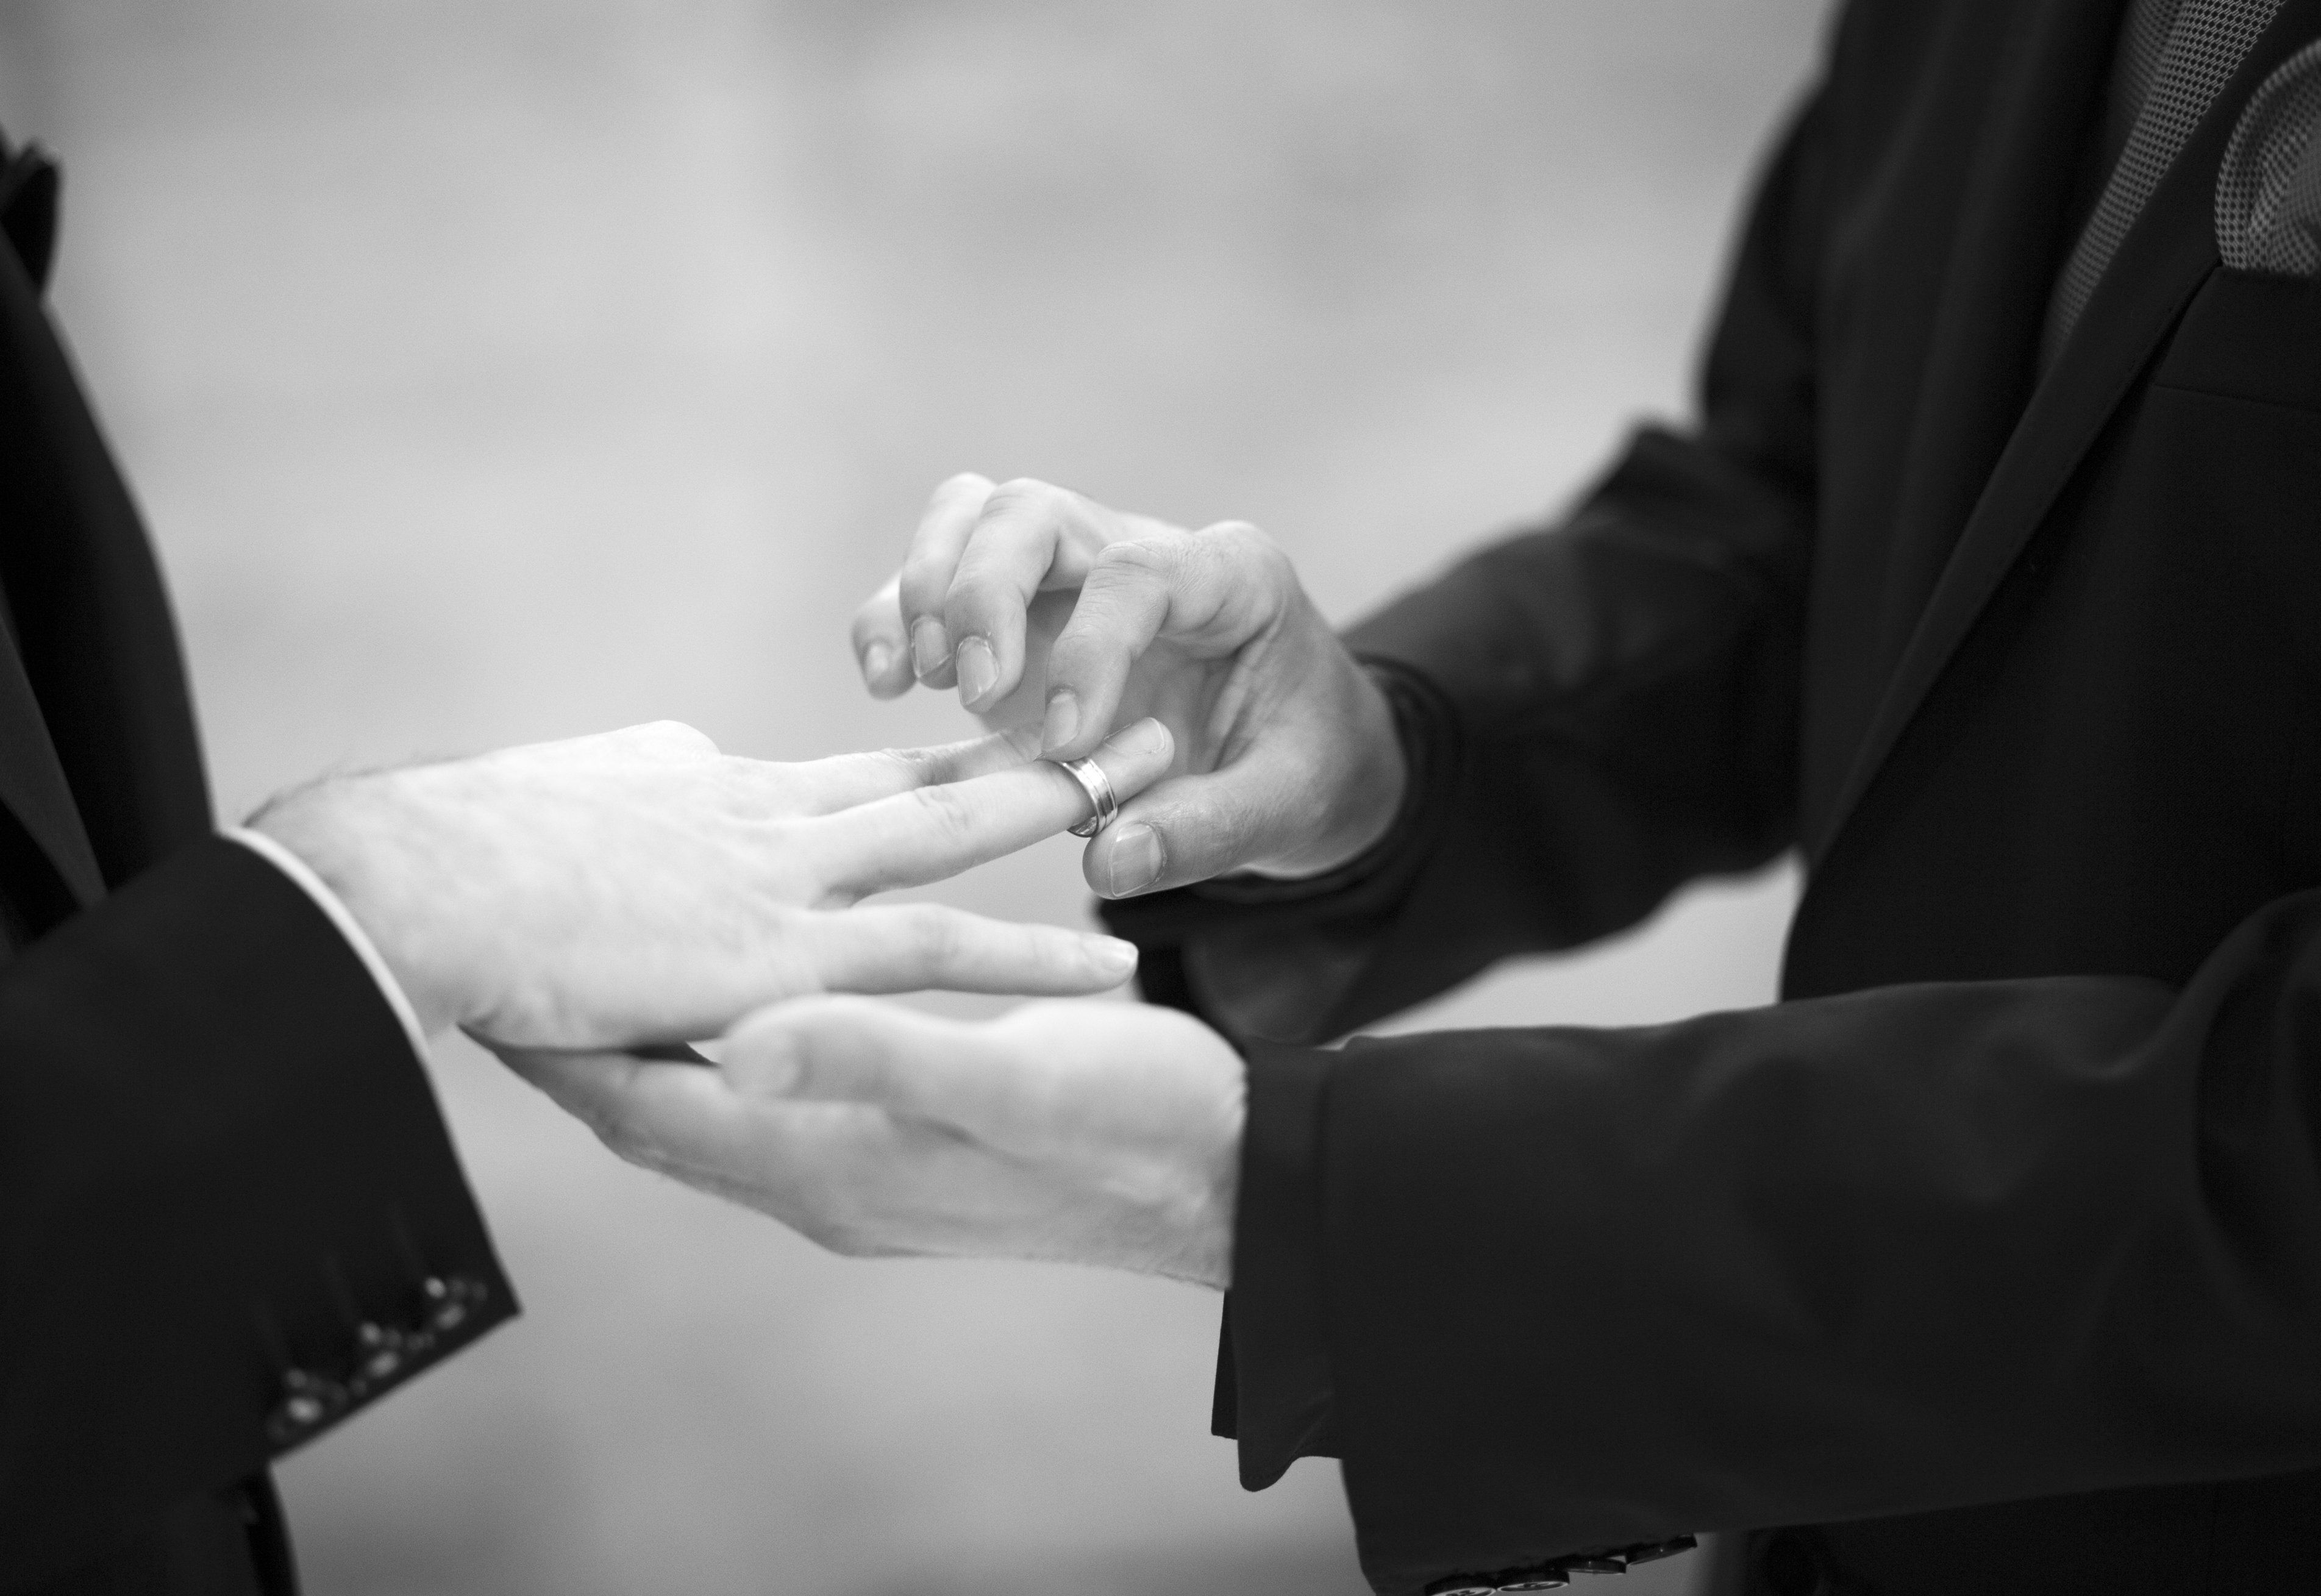 Black and white artistic digital rectangular horizontal photo of the hands of the two grooms wearing dark suits exchanging rings in a same sex homosexual gay wedding ceremony in Spain. Shallow depth of focus with background out of focus in bokeh blur.